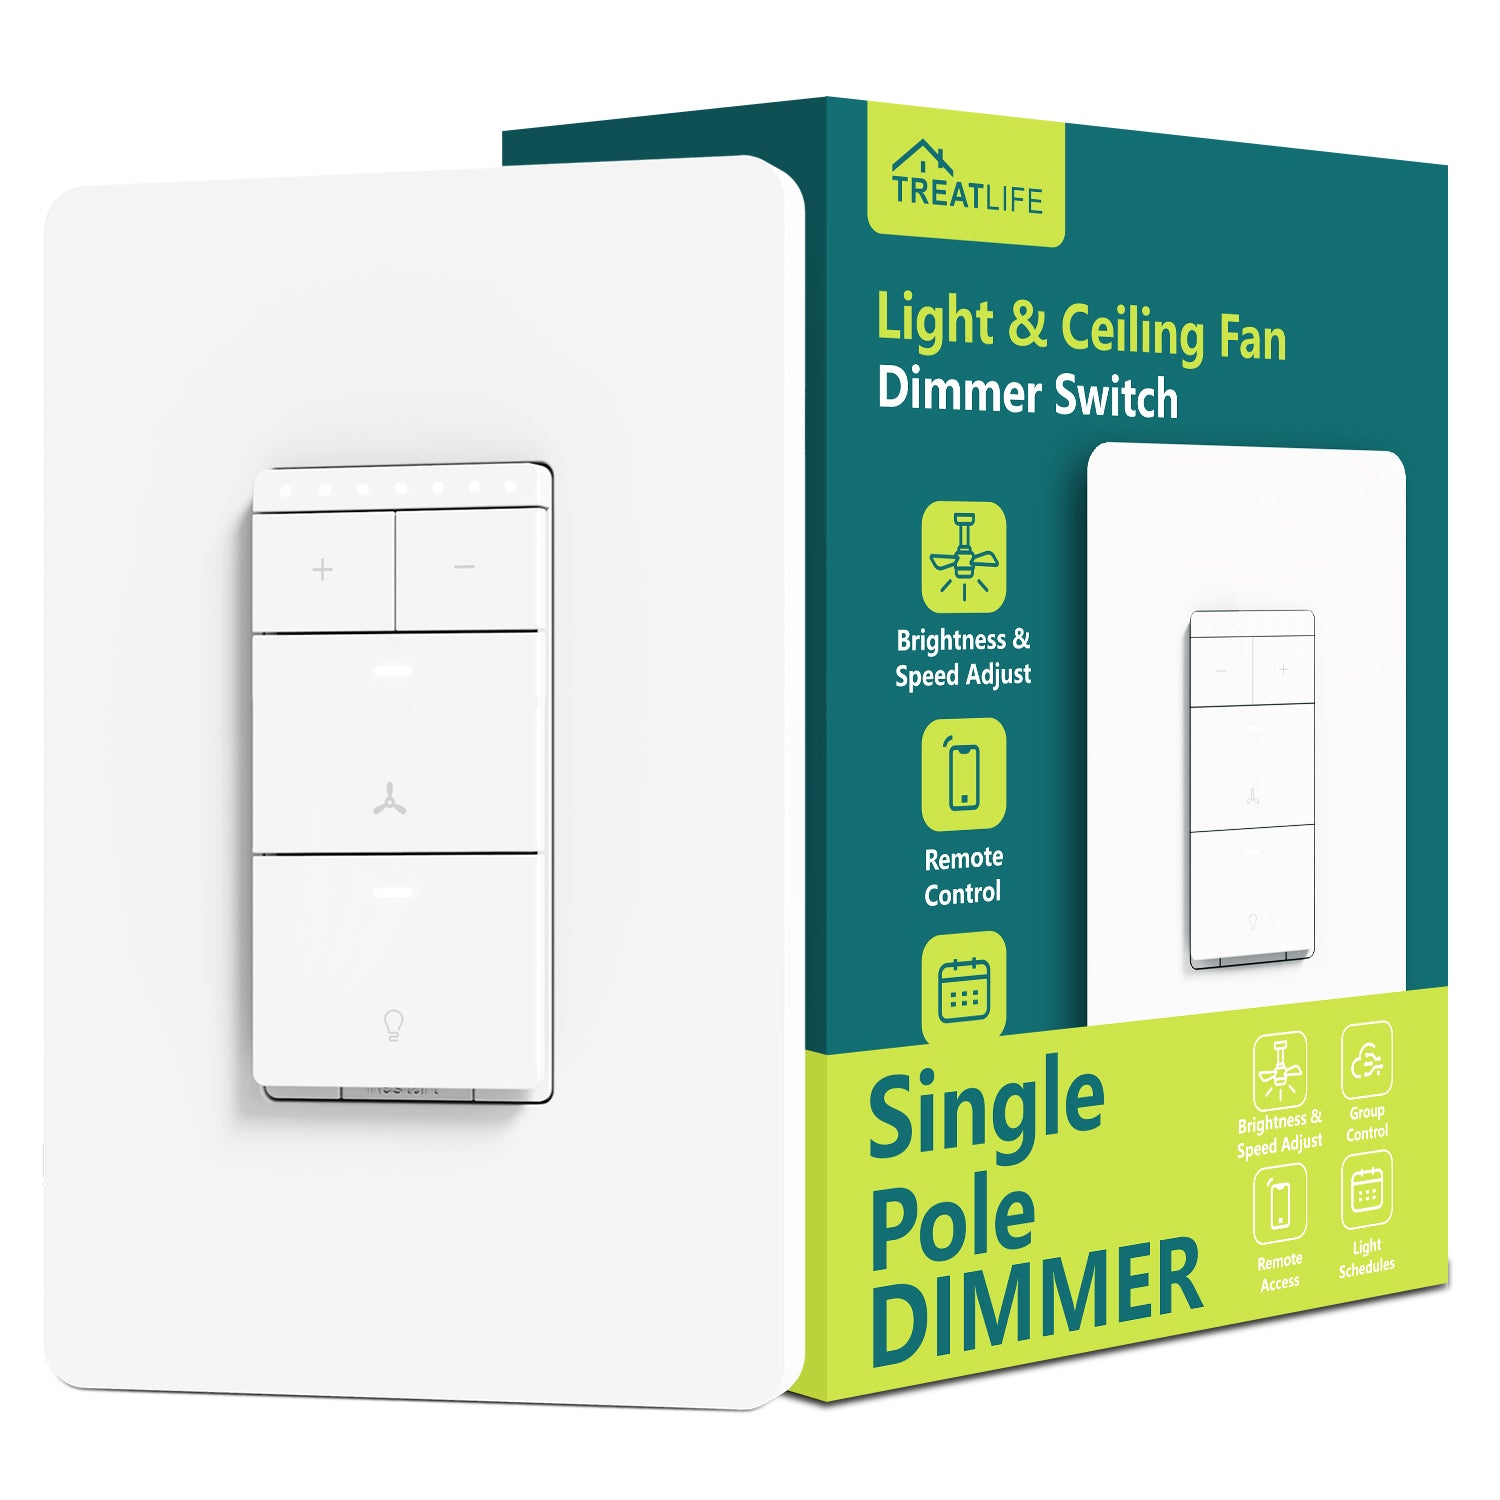 Gearbrain Treatlife Smart Ceiling Fan Control Light Dimmer Switch Works With Alexa Google Assistant Ds01 Dimmer